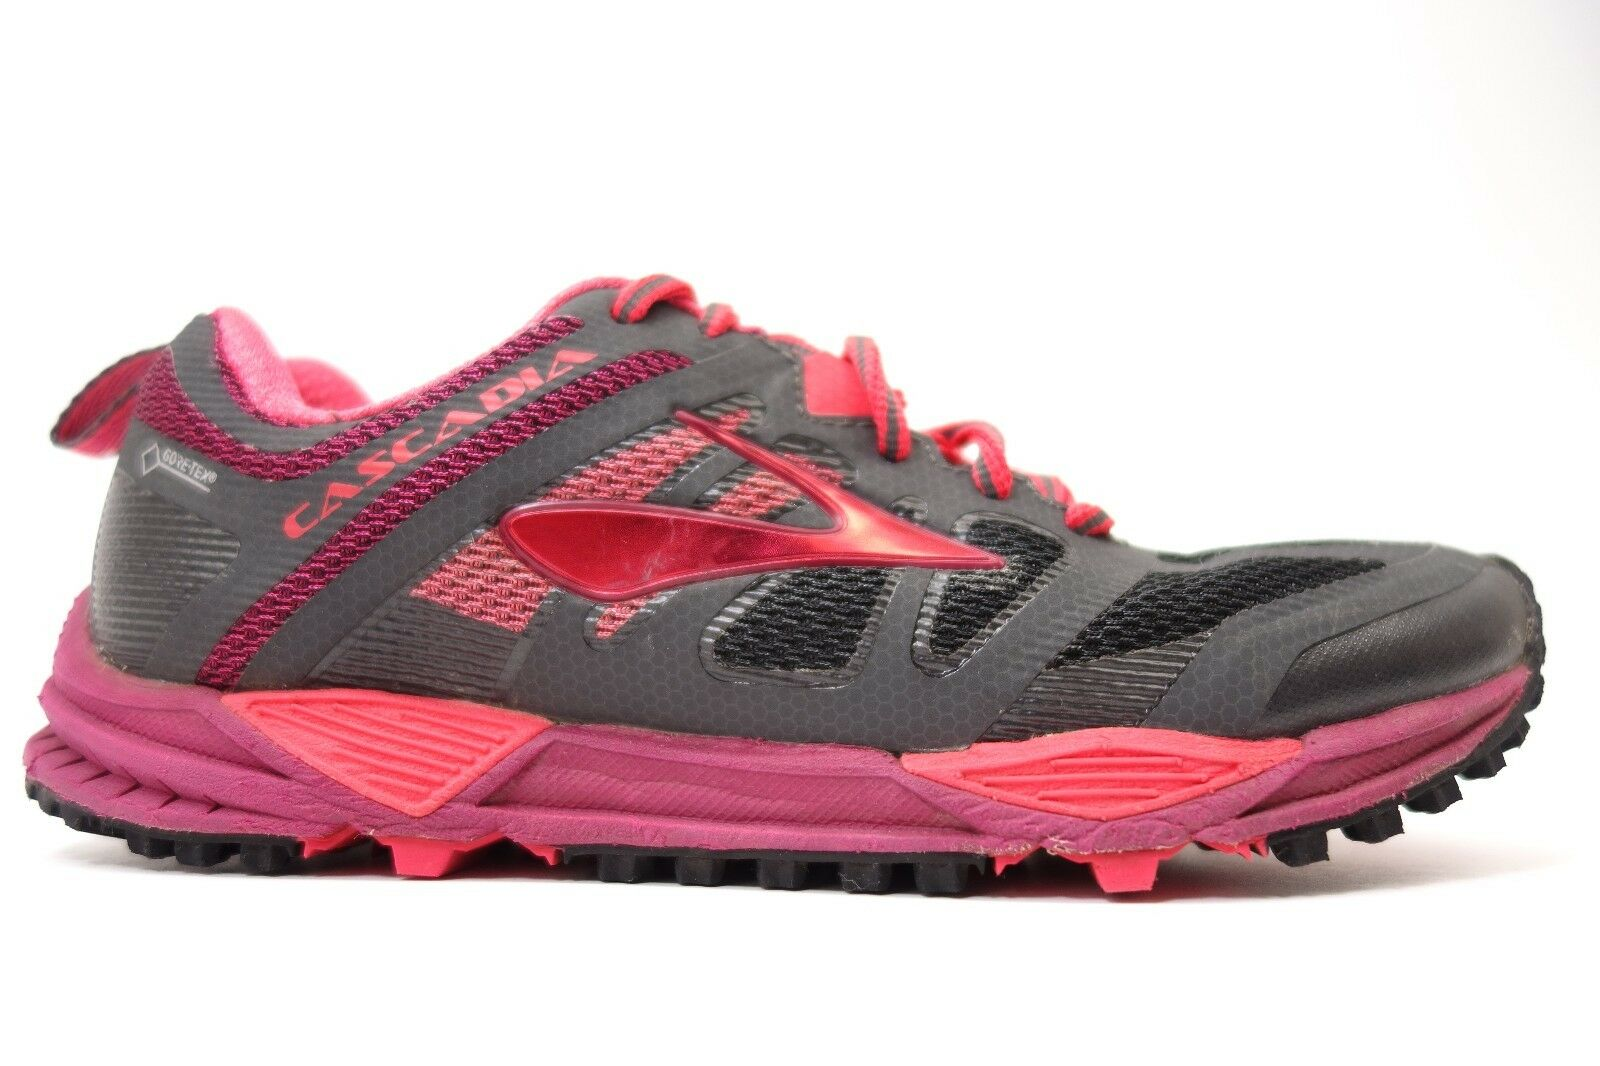 Damenschuhe Brooks Pink Cascadia 11 GTX Athletic Running Training Schuhes Größe 6.5